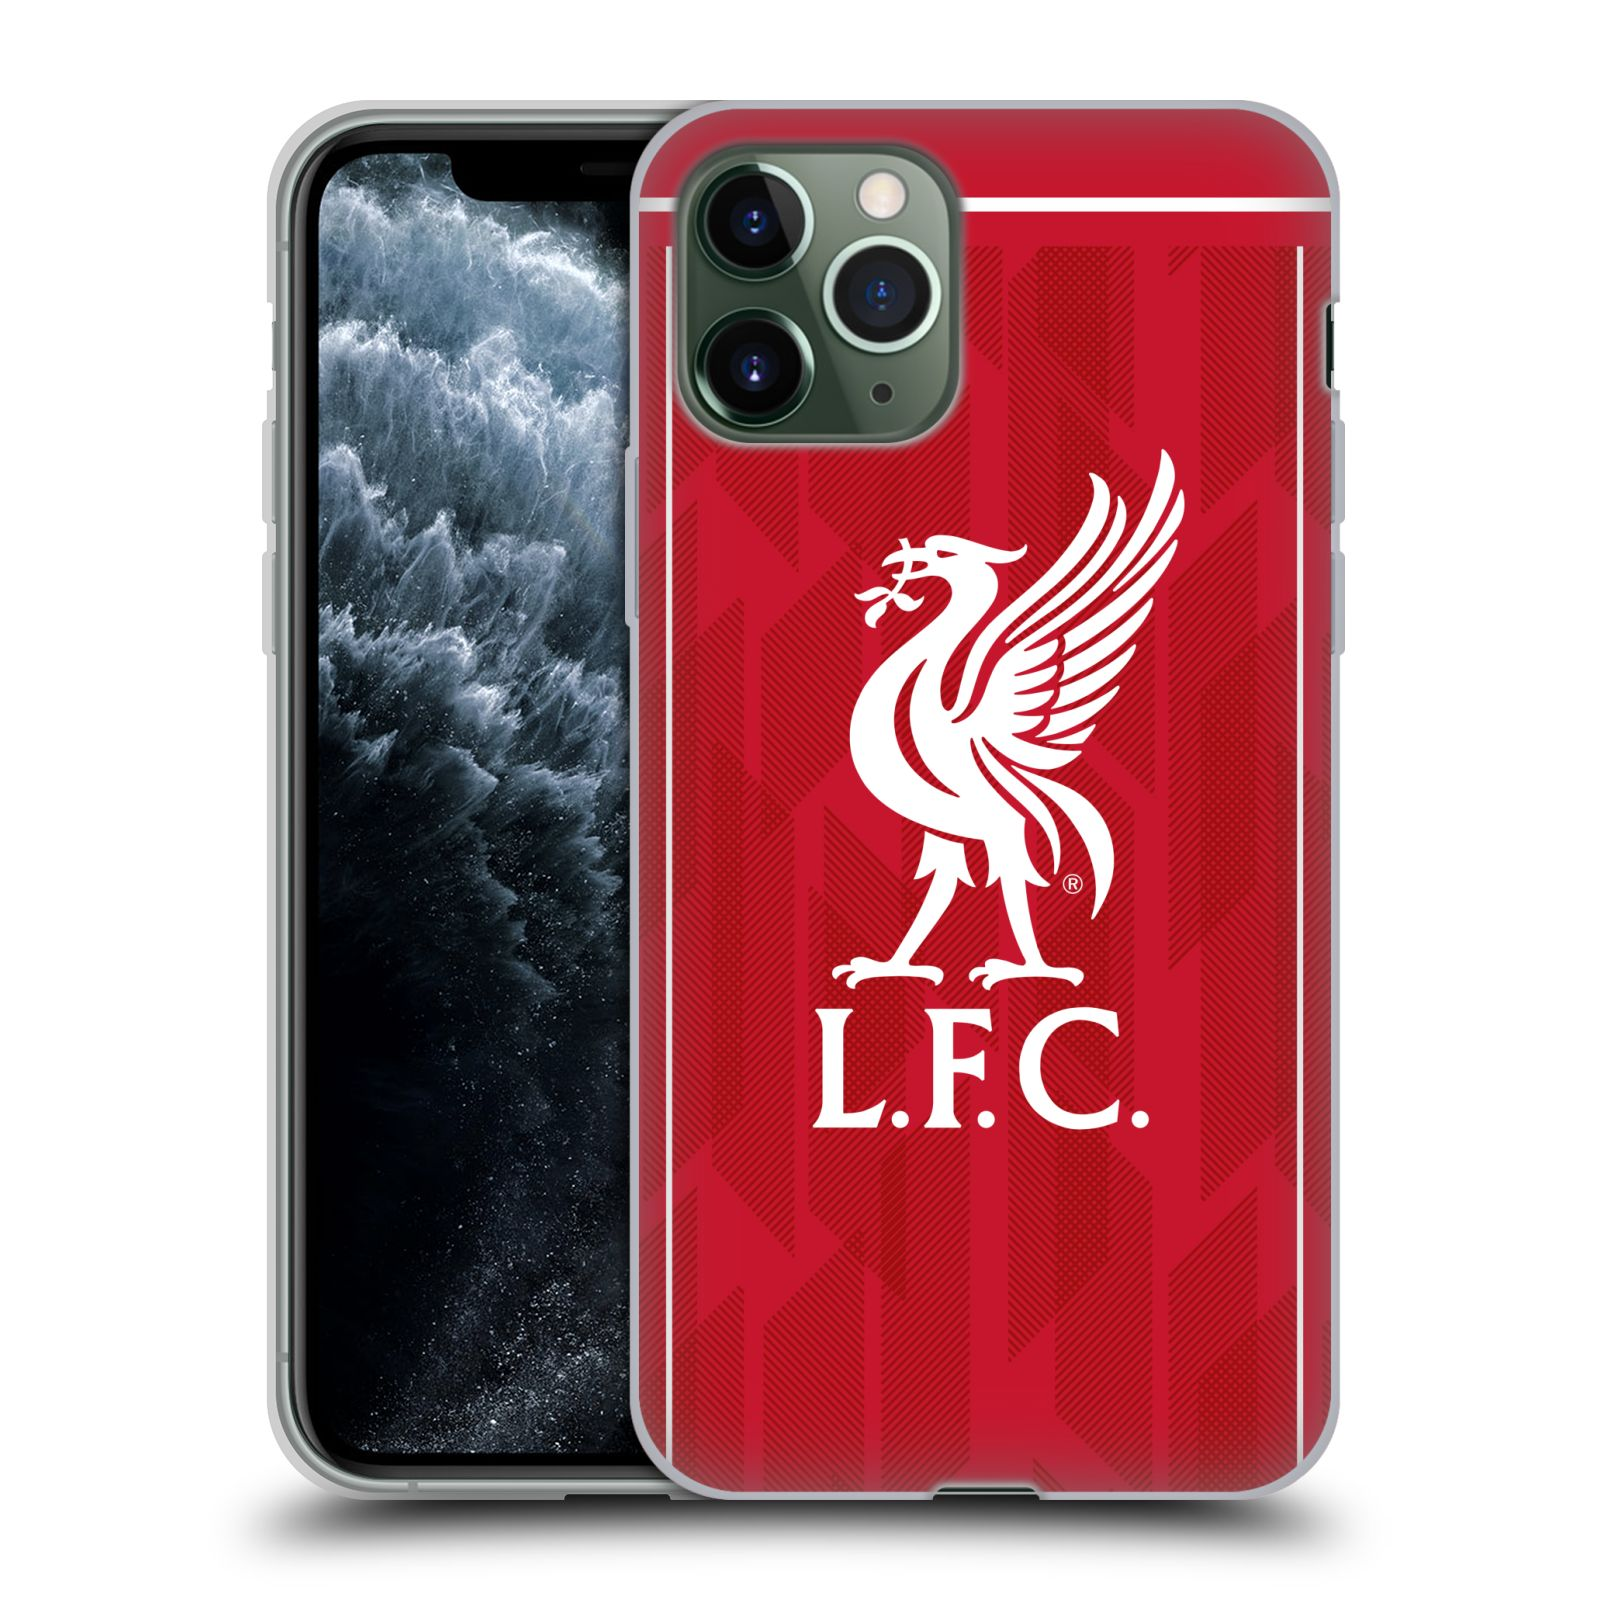 apple iphone xr obal | Silikonové pouzdro na mobil Apple iPhone 11 Pro - Head Case - Liverpool FC - L.F.C. Home kit